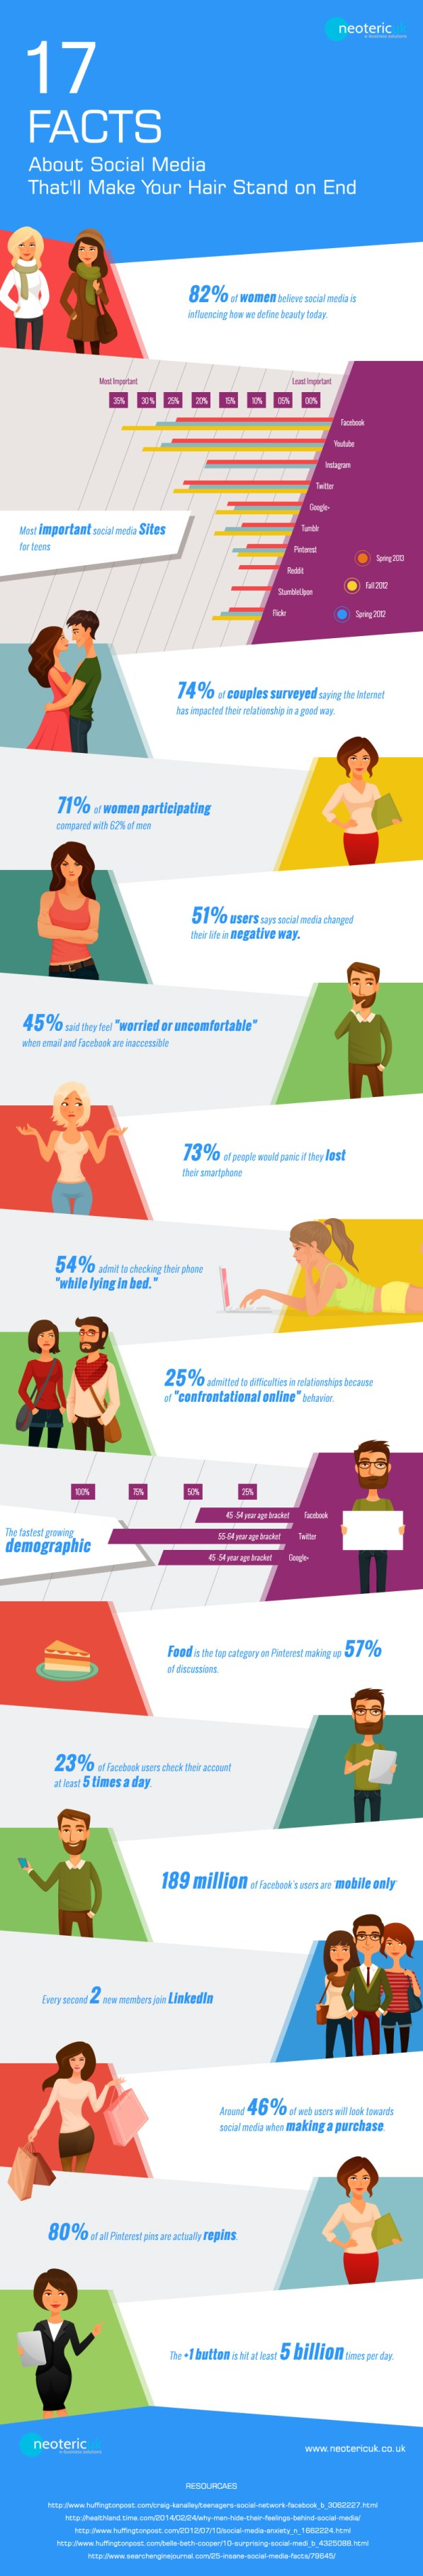 17-Facts-about-Social-Media